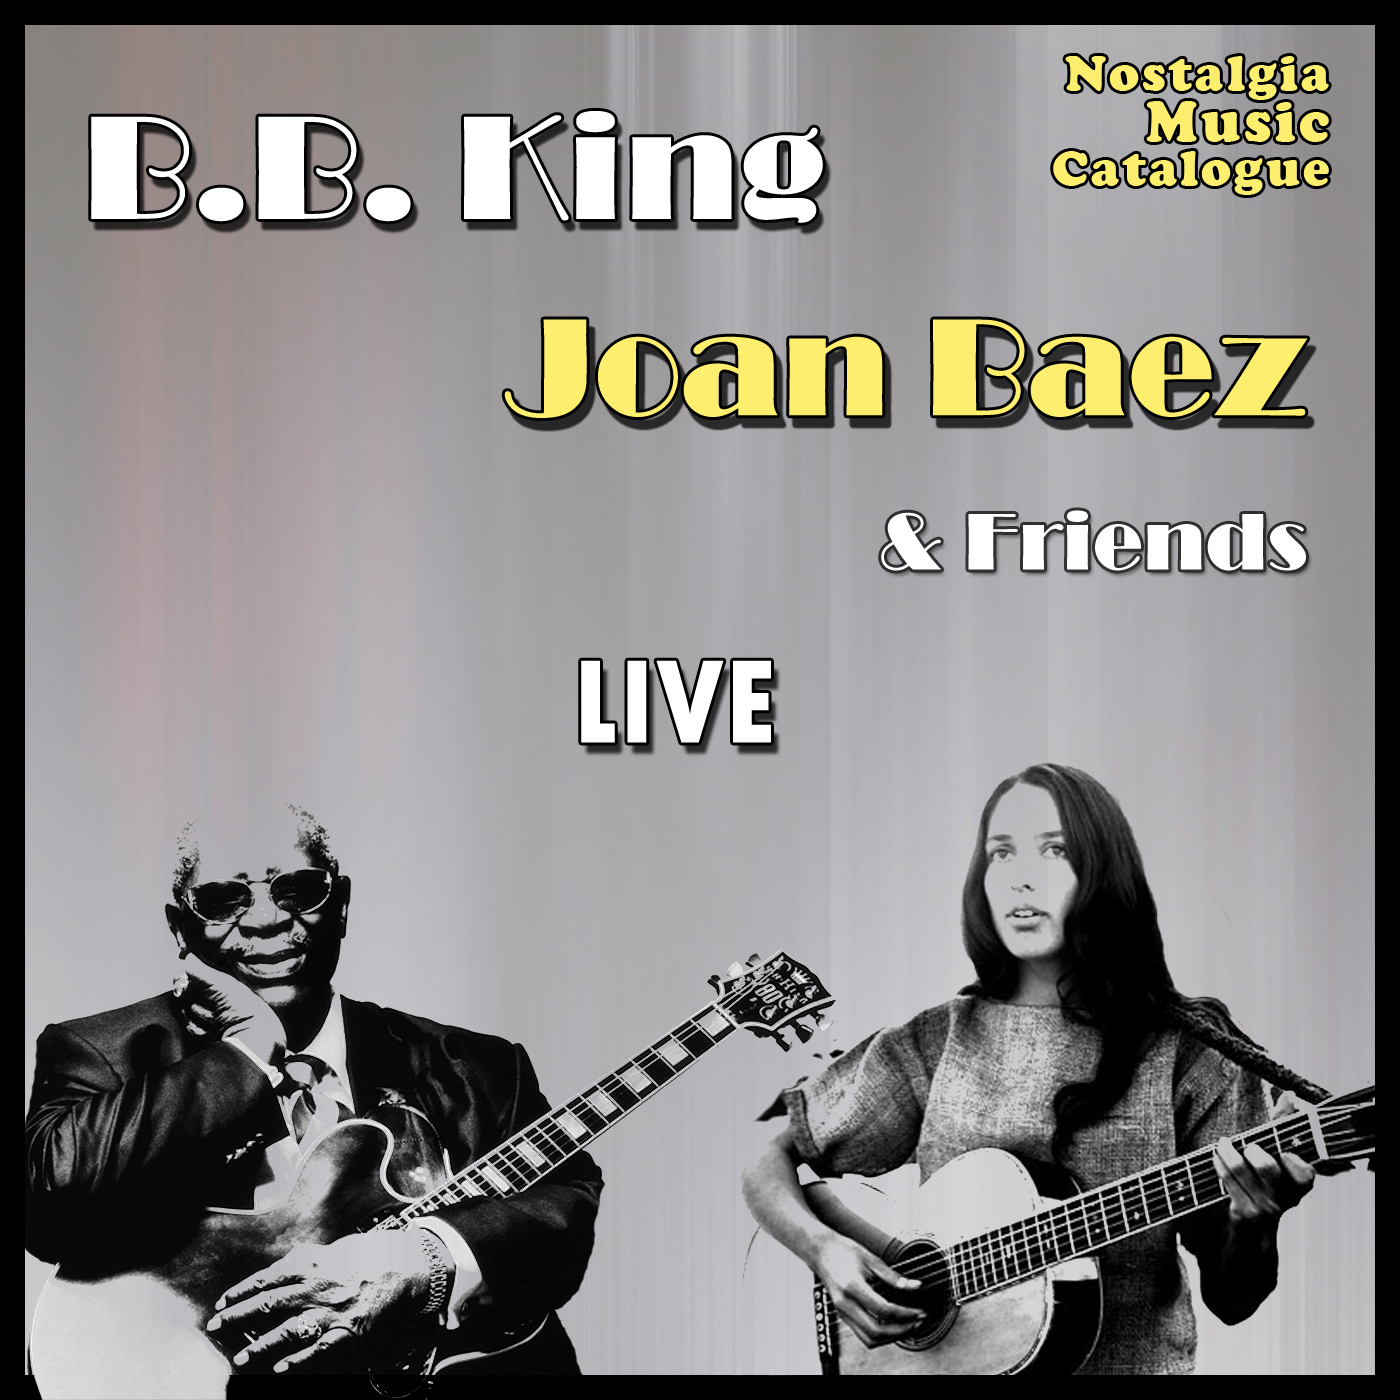 bb king joan baez friends live nostalgia music catalogue old songs blues